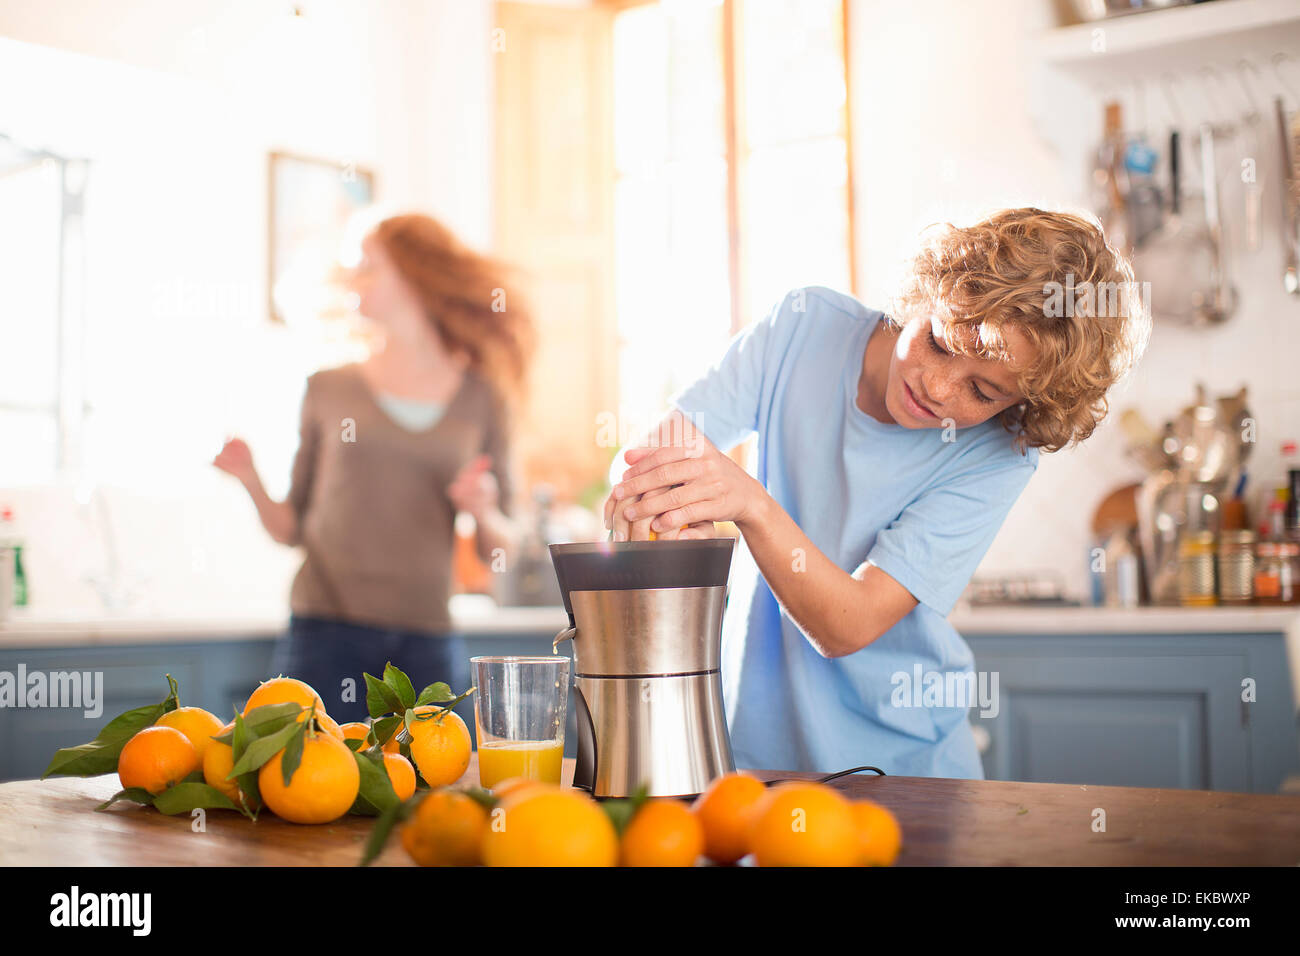 Teenage boy jus orange en cuisine Photo Stock